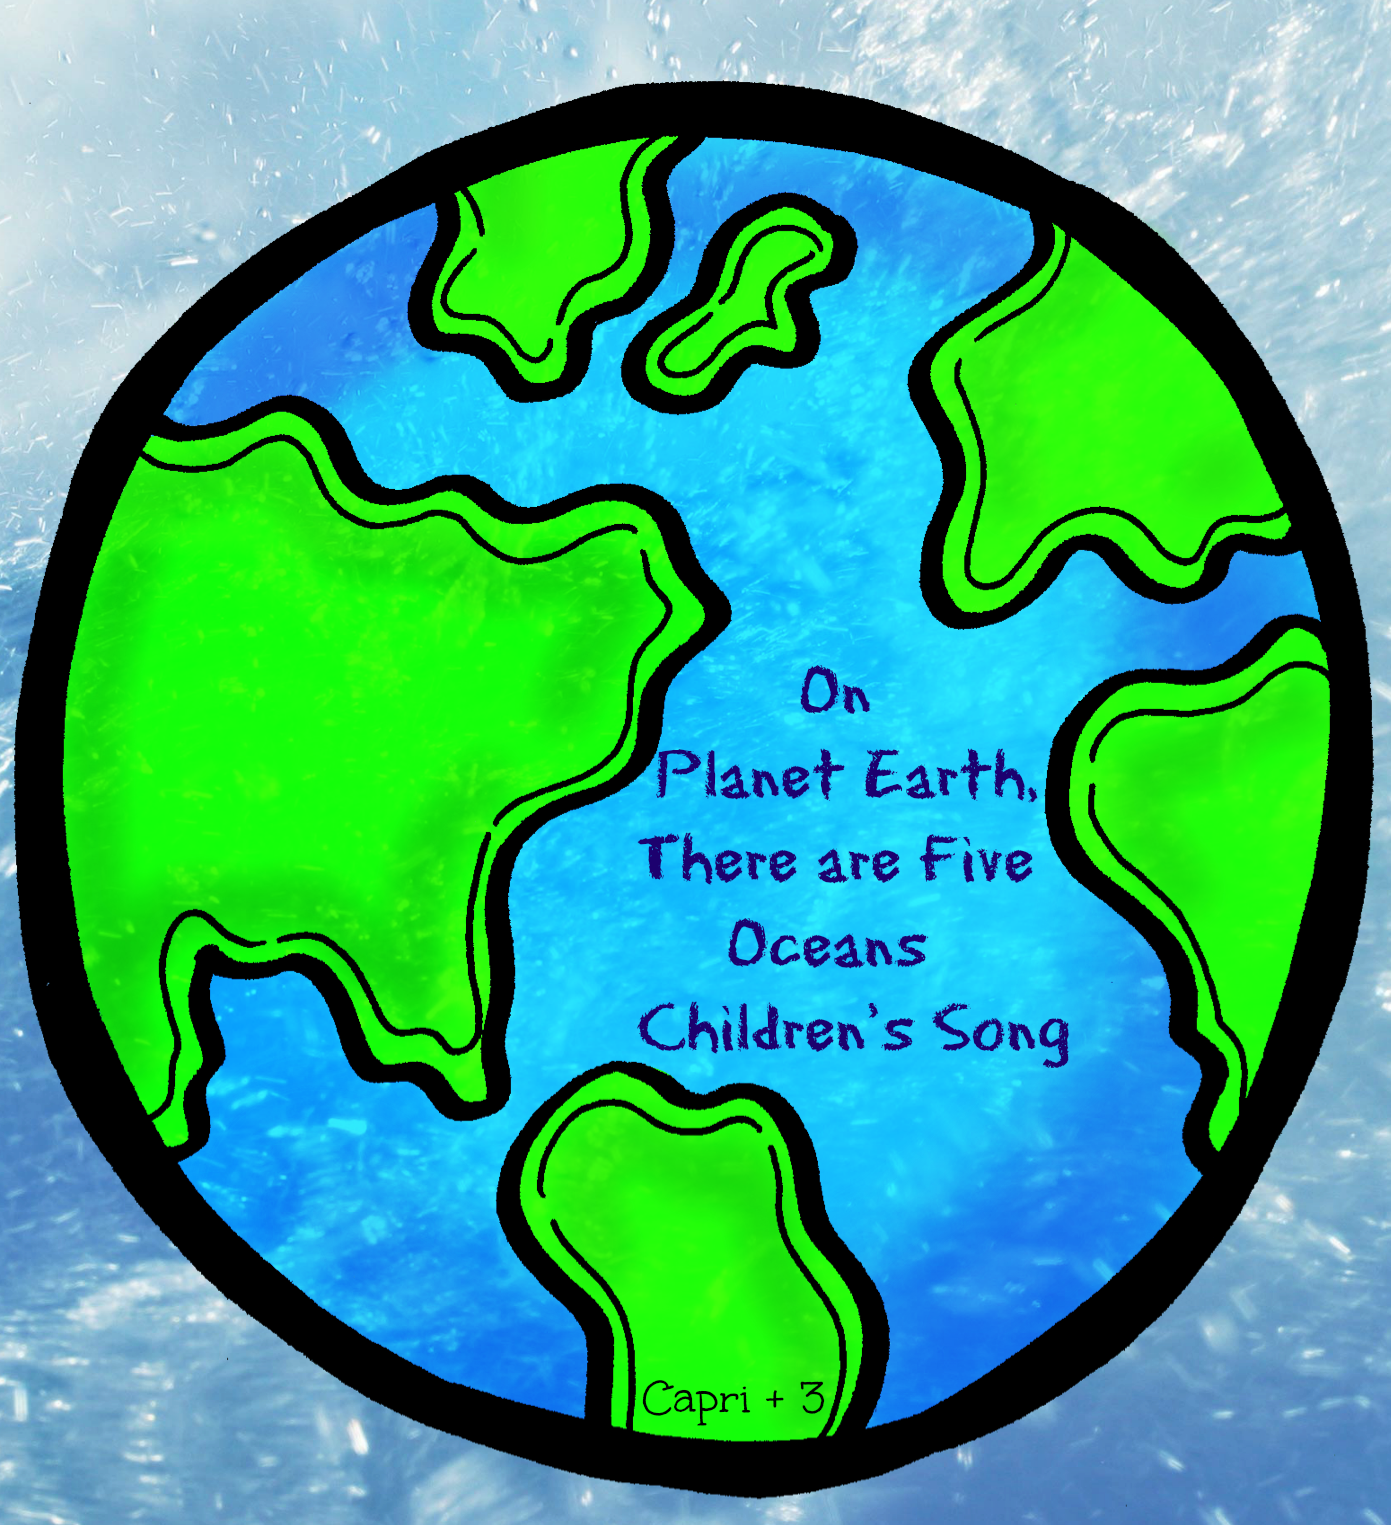 On Planet Earth There Are 5 Oceans Children S Song